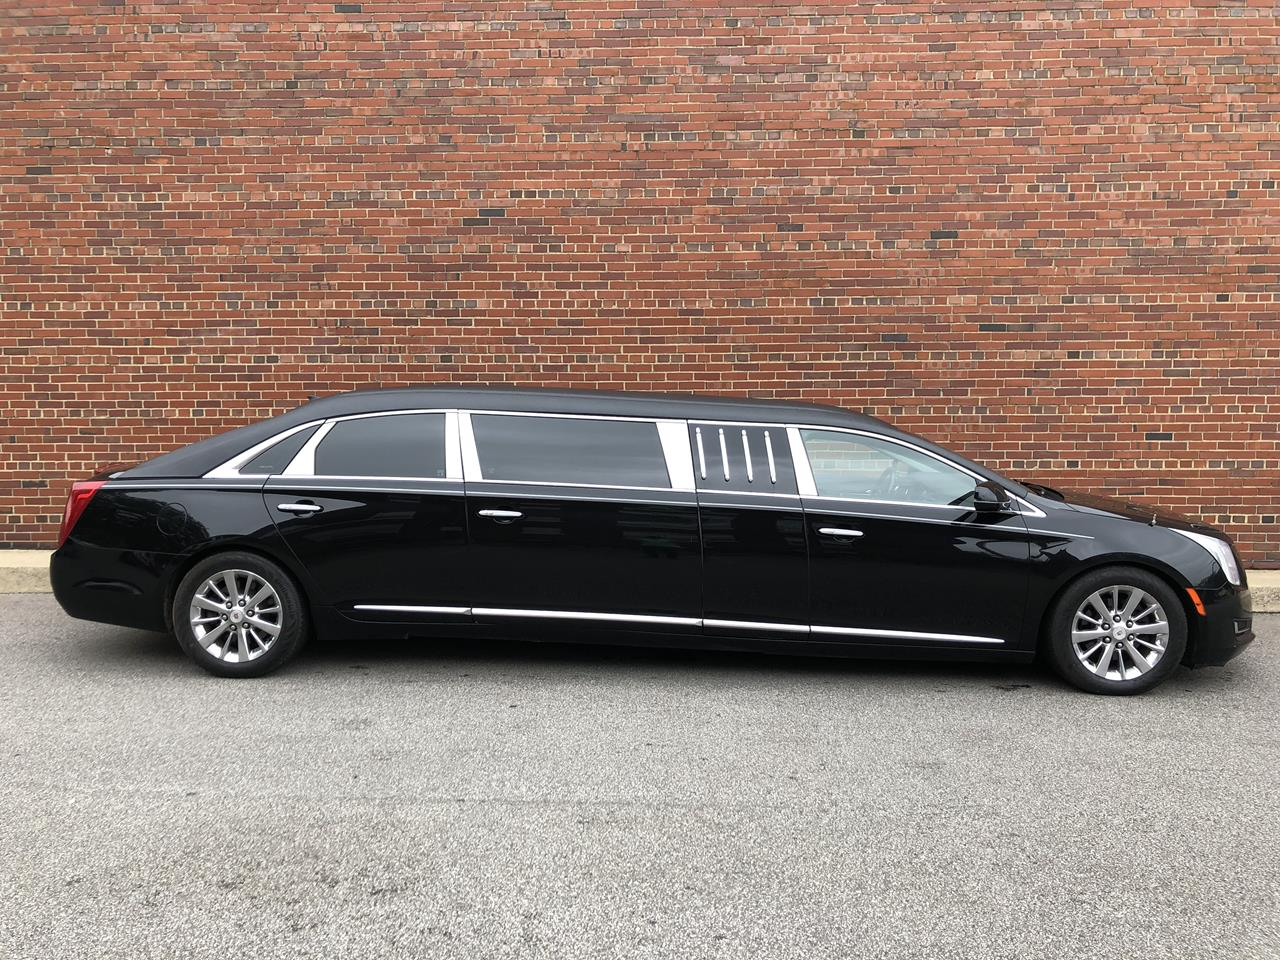 "2014 Cadillac Eagle 70"" Stretch Limousine"